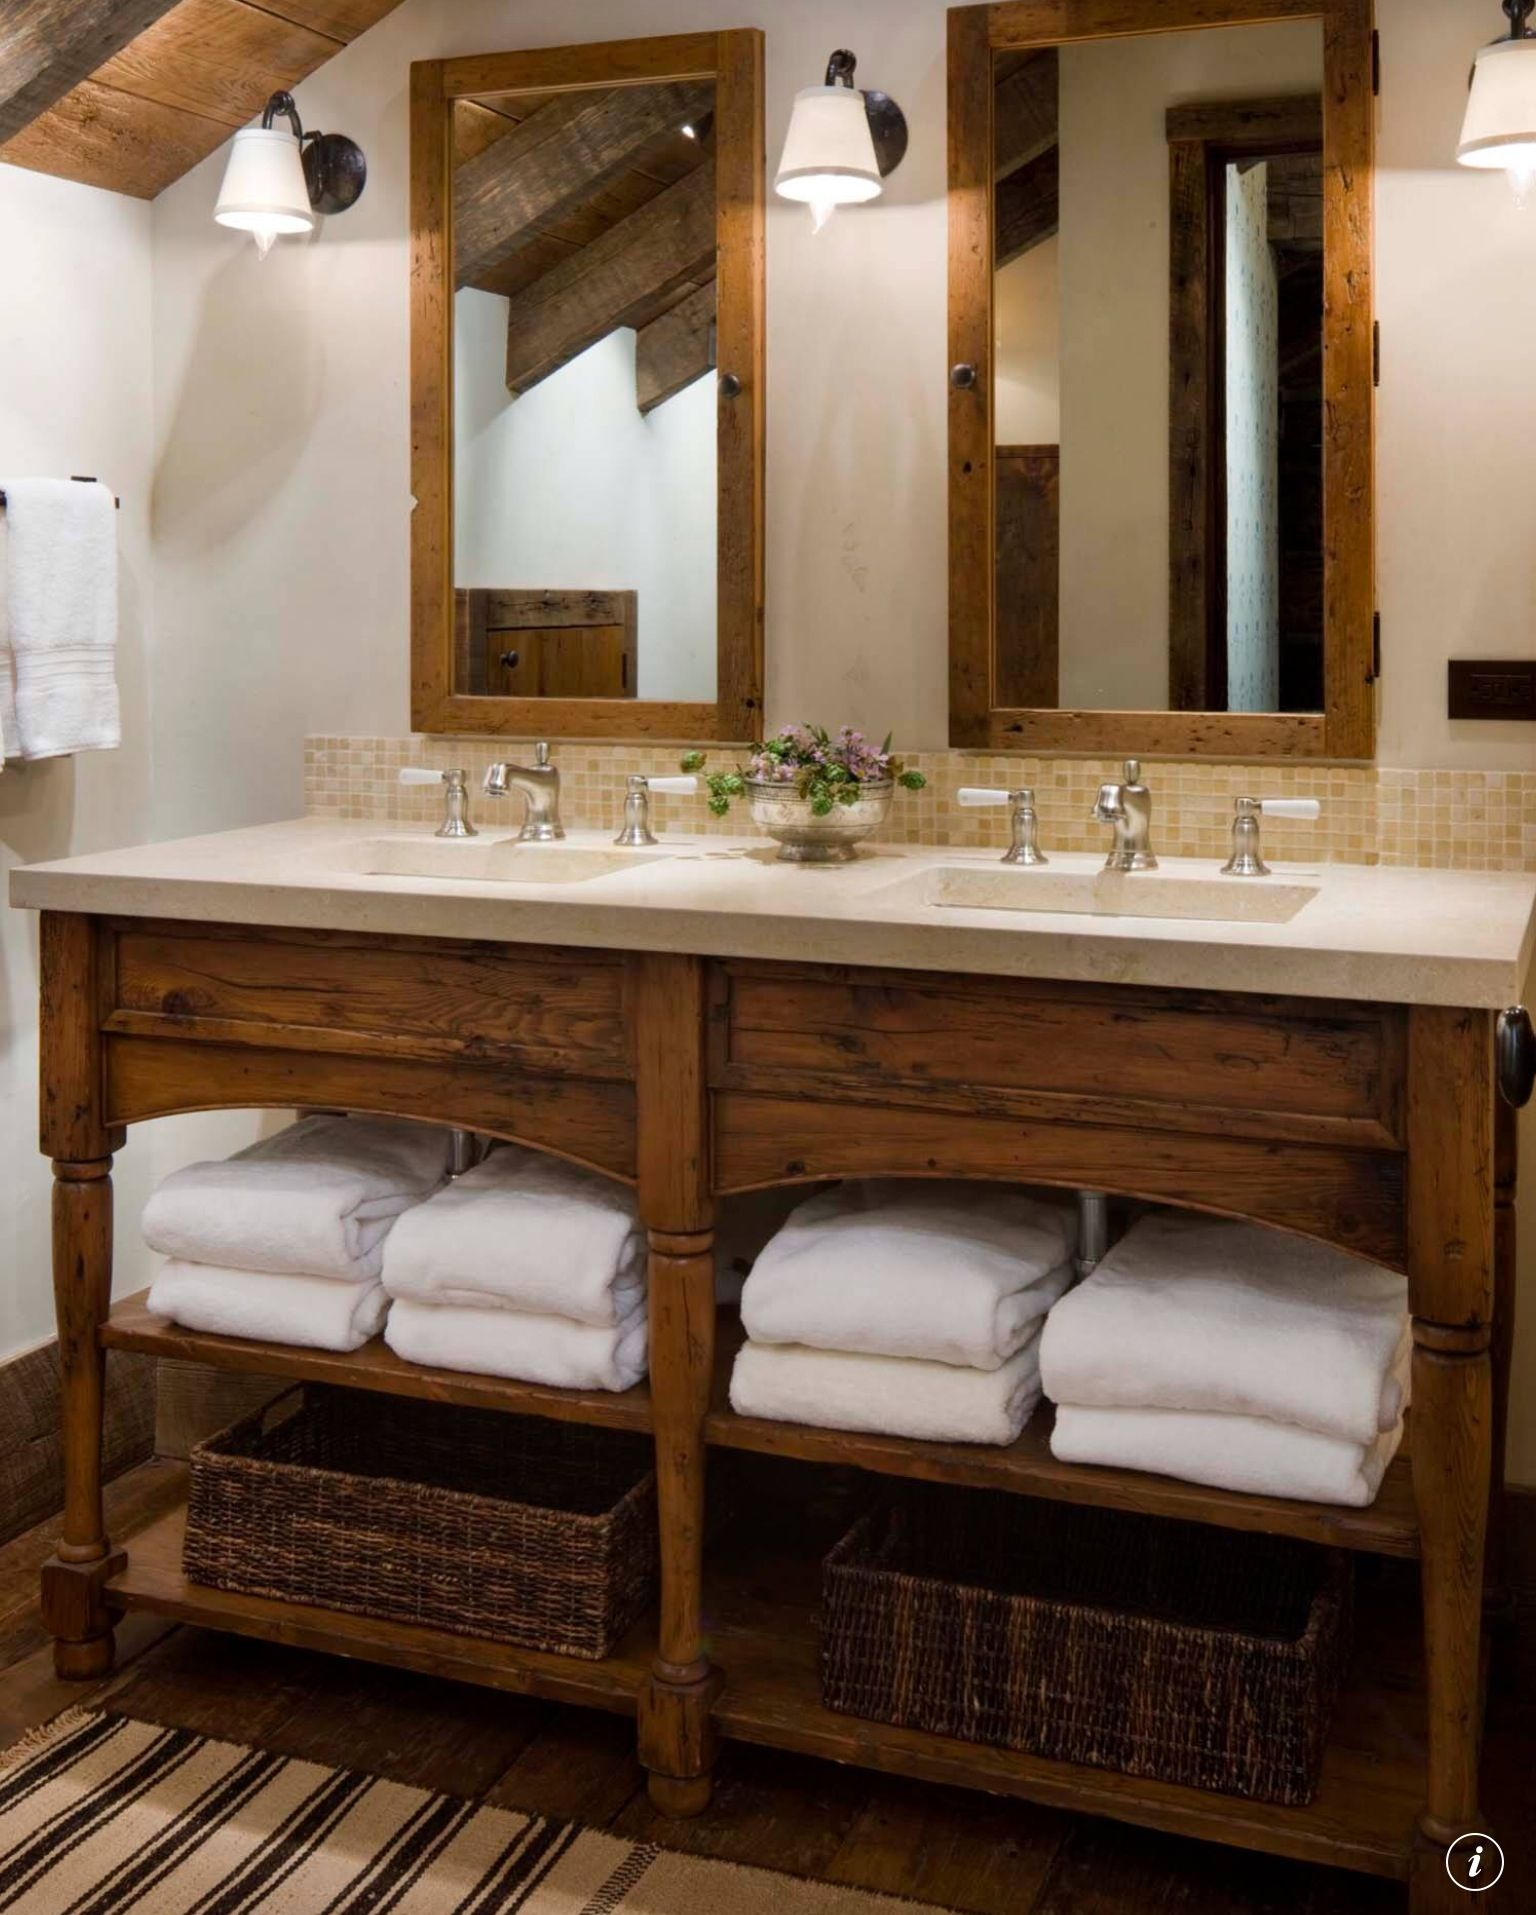 Rustic Bathroom With White Shiplap: Rustic Bathroom Designs